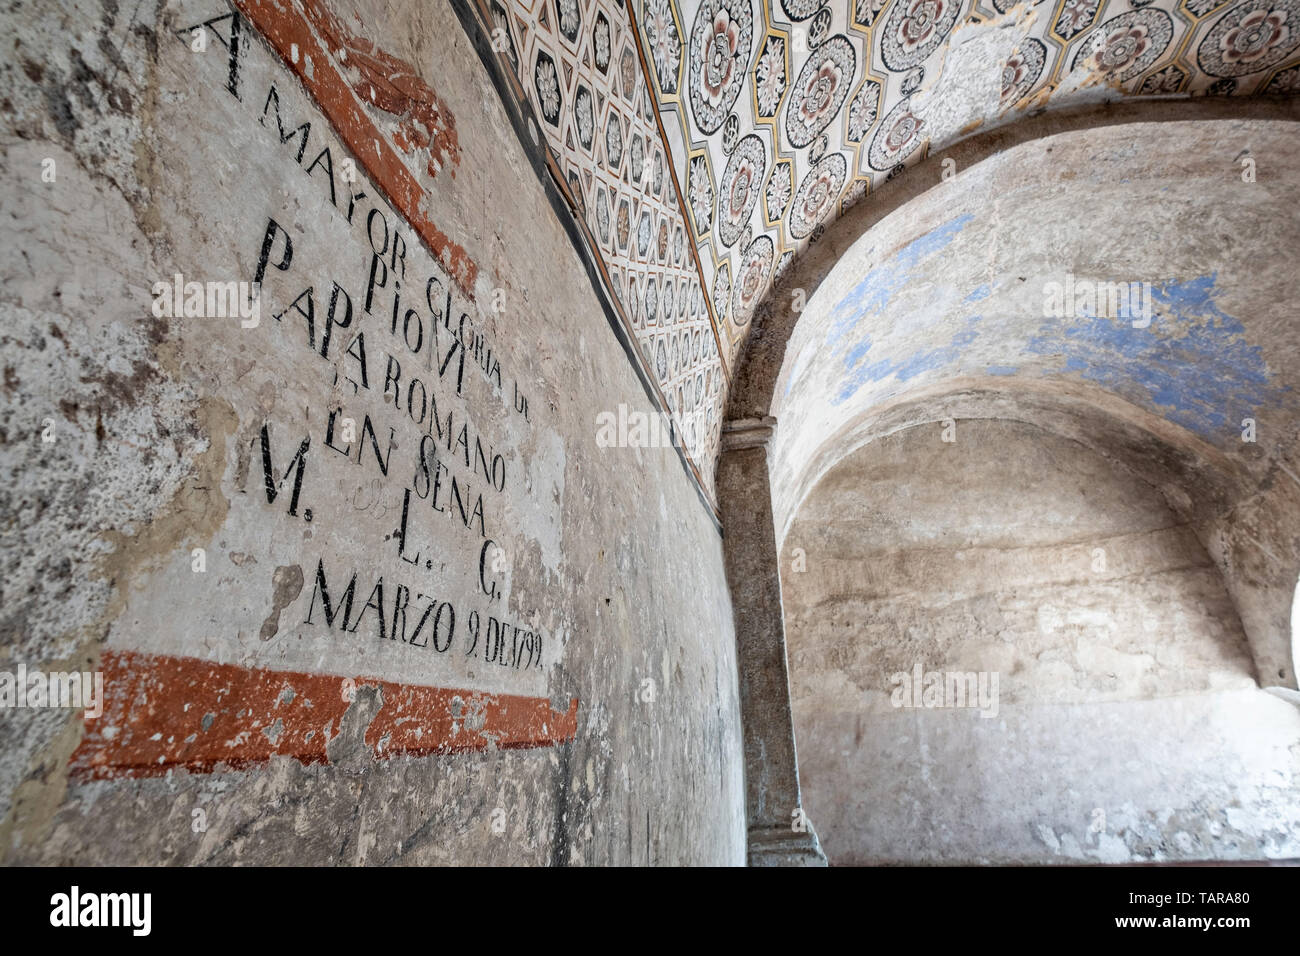 Painted murals on a wall in the San Nicolas Tolentino Temple and Ex-Monastery in Actopan, Hidalgo, Mexico. The colonial church and convent  was built in 1546 and combine architectural elements from the romantic, gothic and renaissance periods. Stock Photo